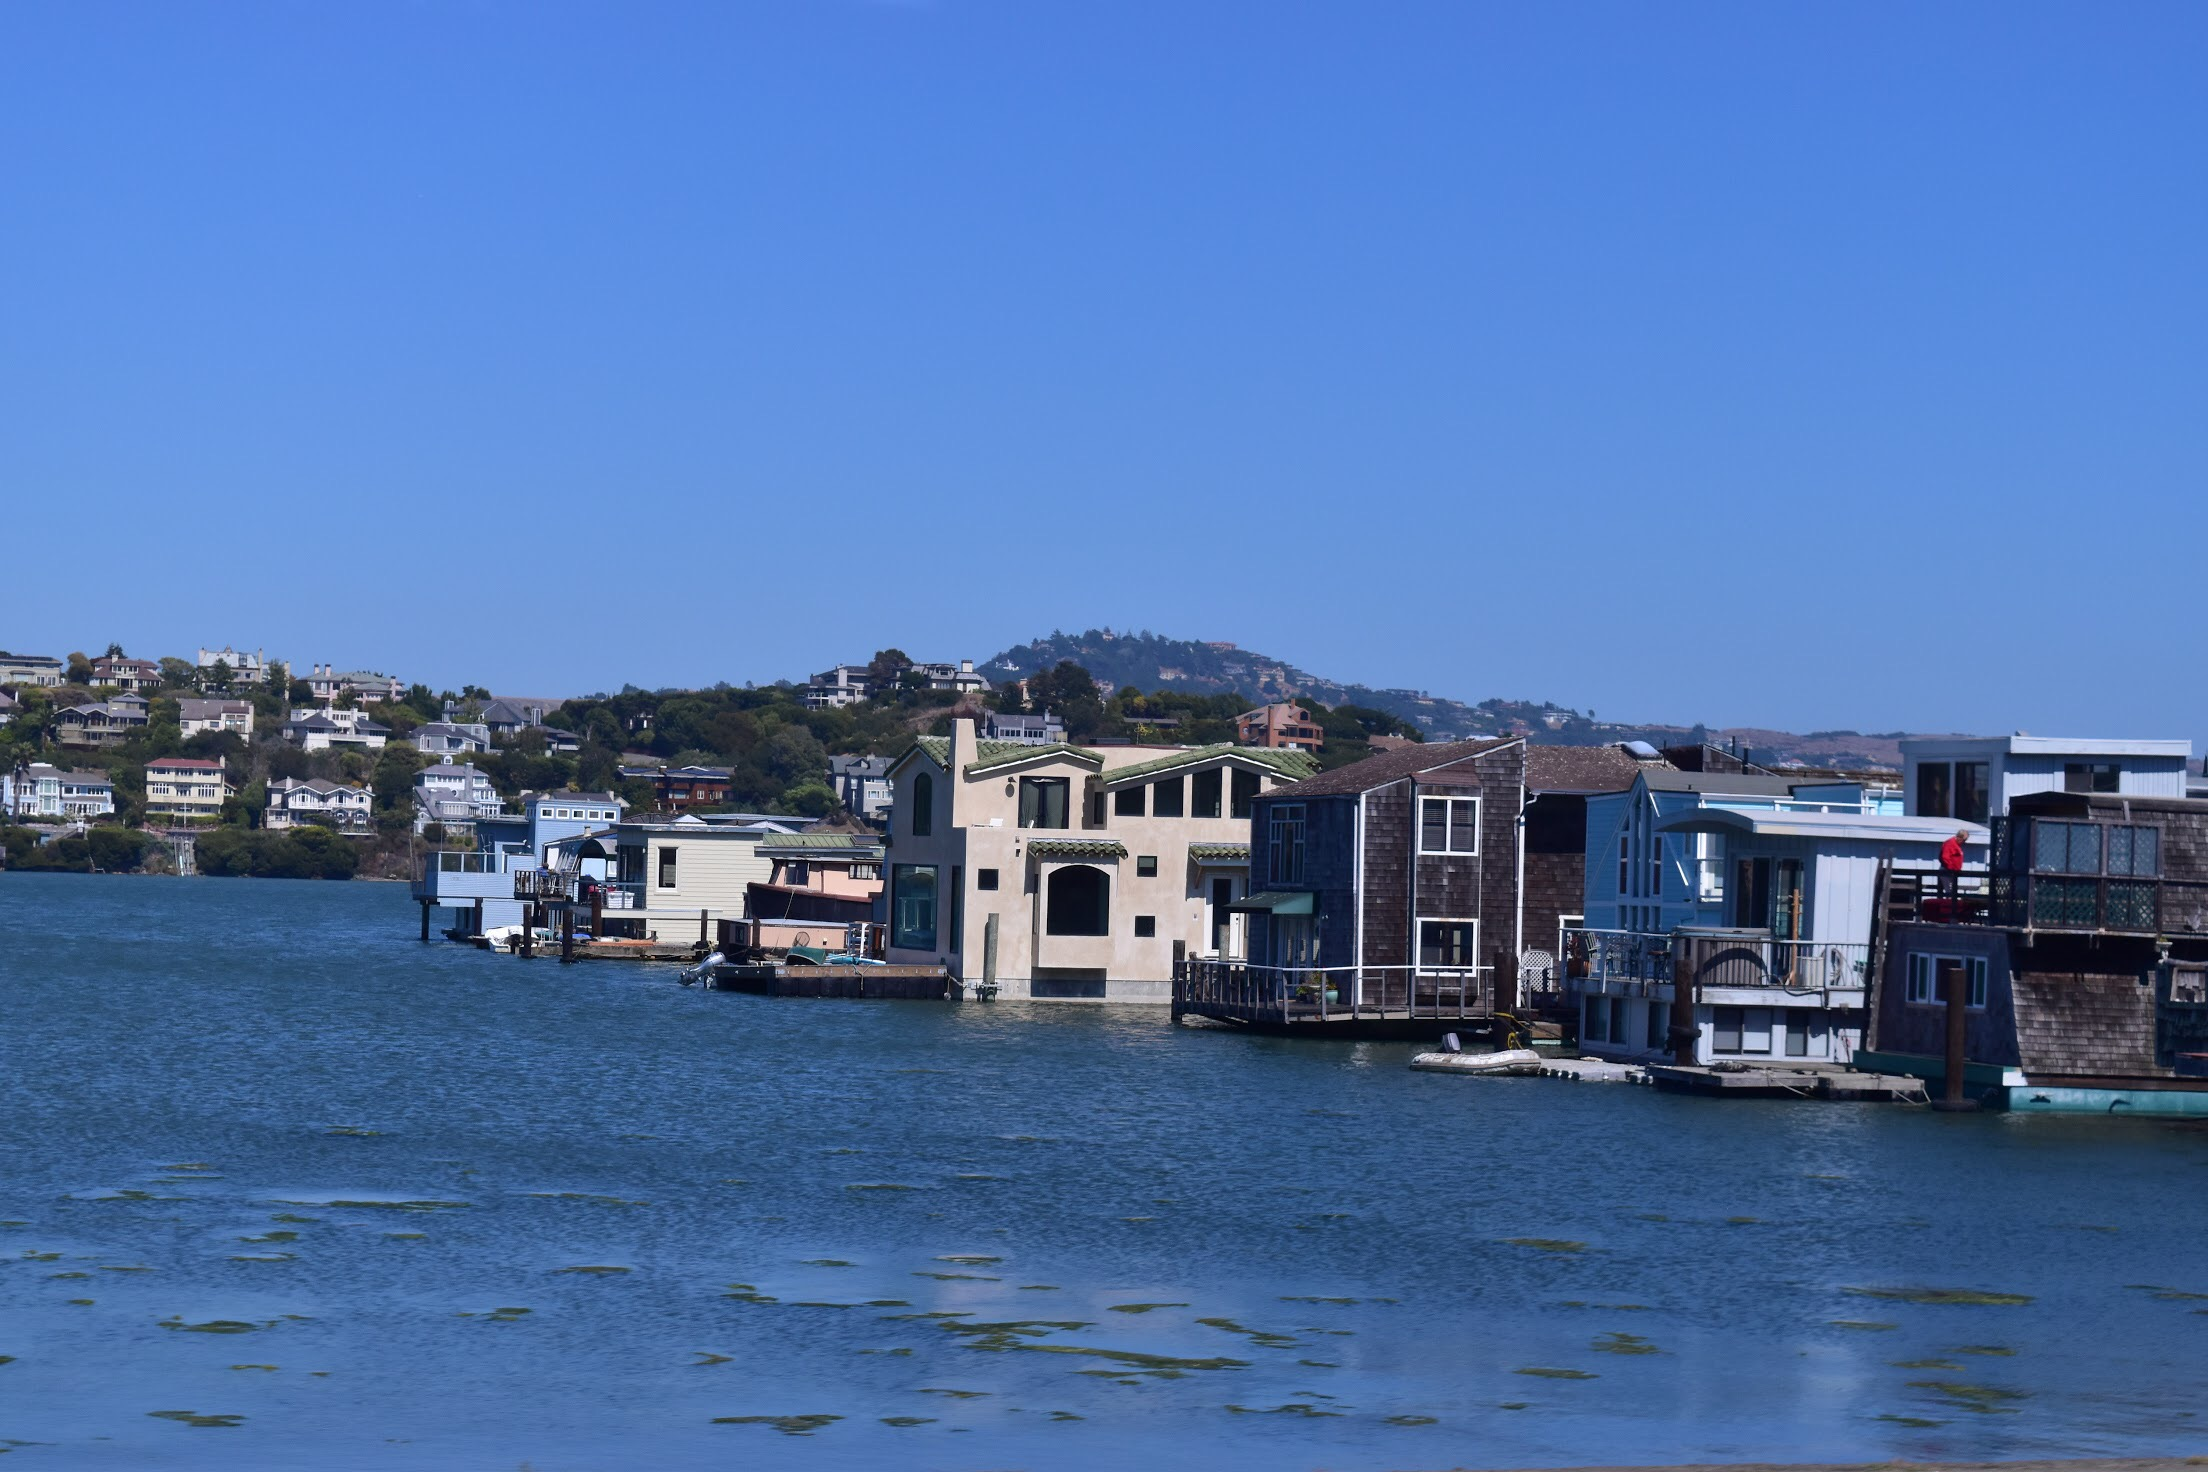 Picture of Sausalito House Boats